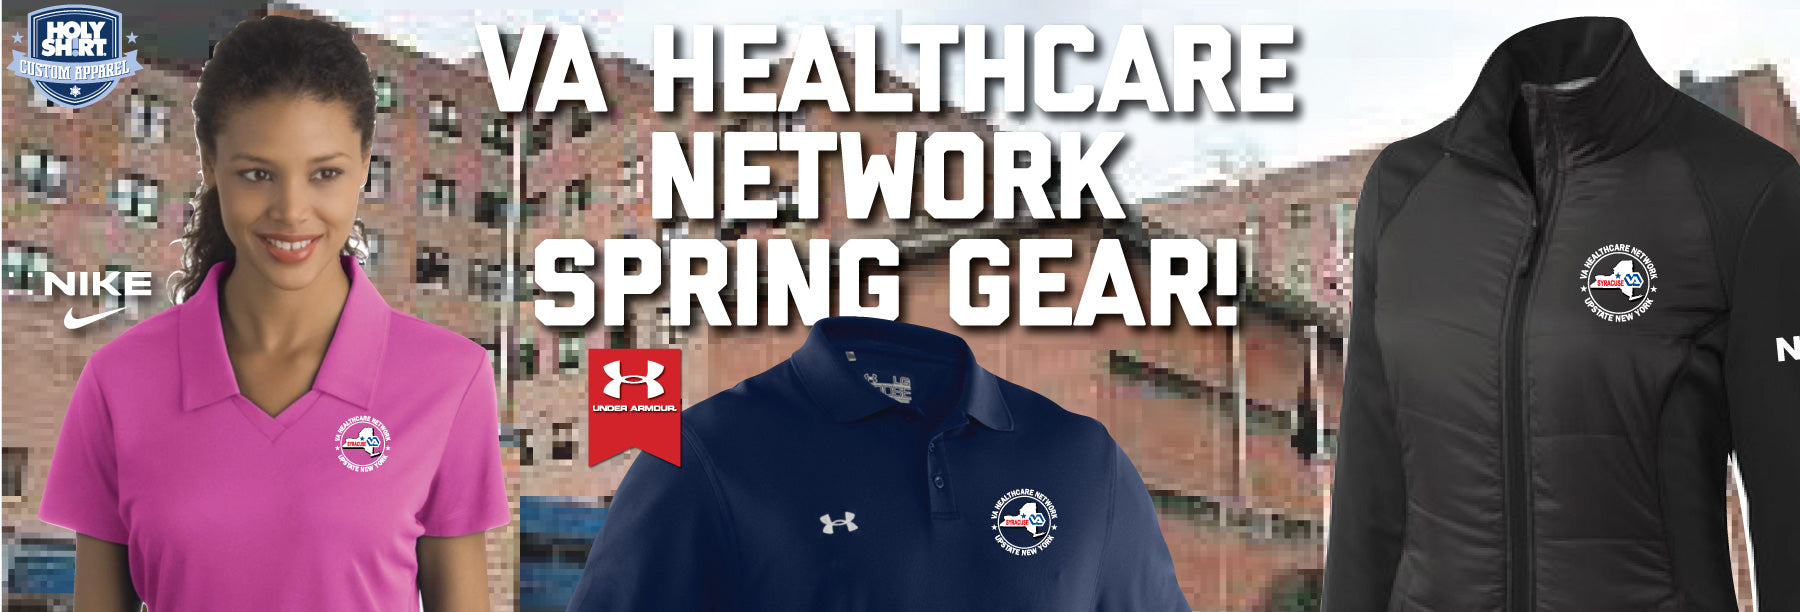 VA Healthcare Network Spring 2017